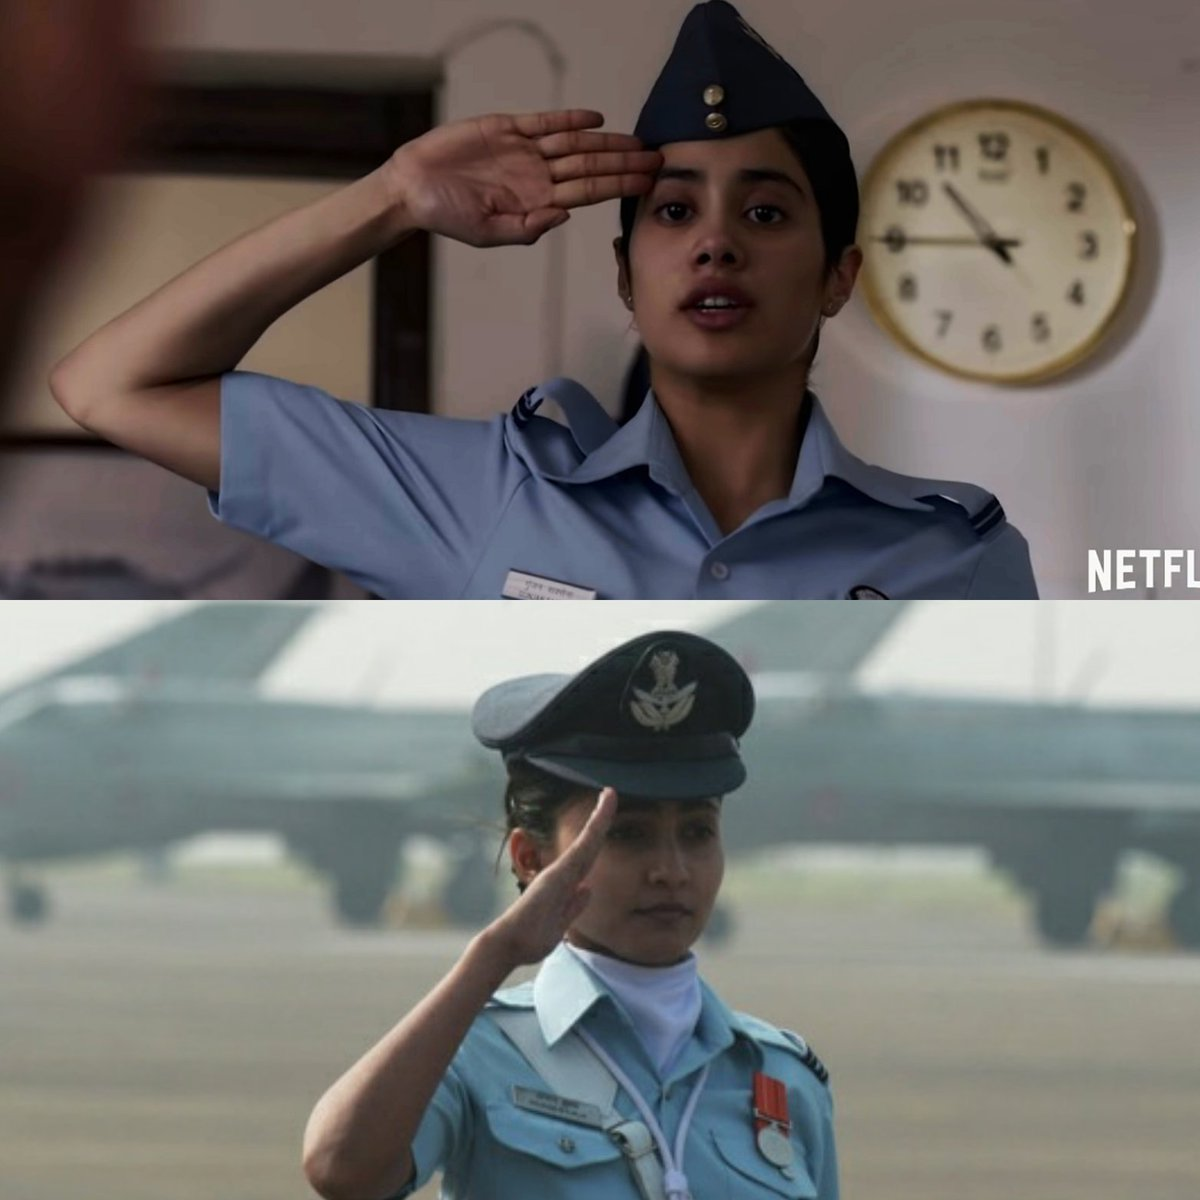 Vaibhav Singh Chauhan On Twitter Atleast She Should Have Worked On The Salute Gunjan Saxena Truly Deserved Someone Better Here Jhanvikapoor Gunjansaxena Reelvsreal Https T Co 5vp3xzoktv